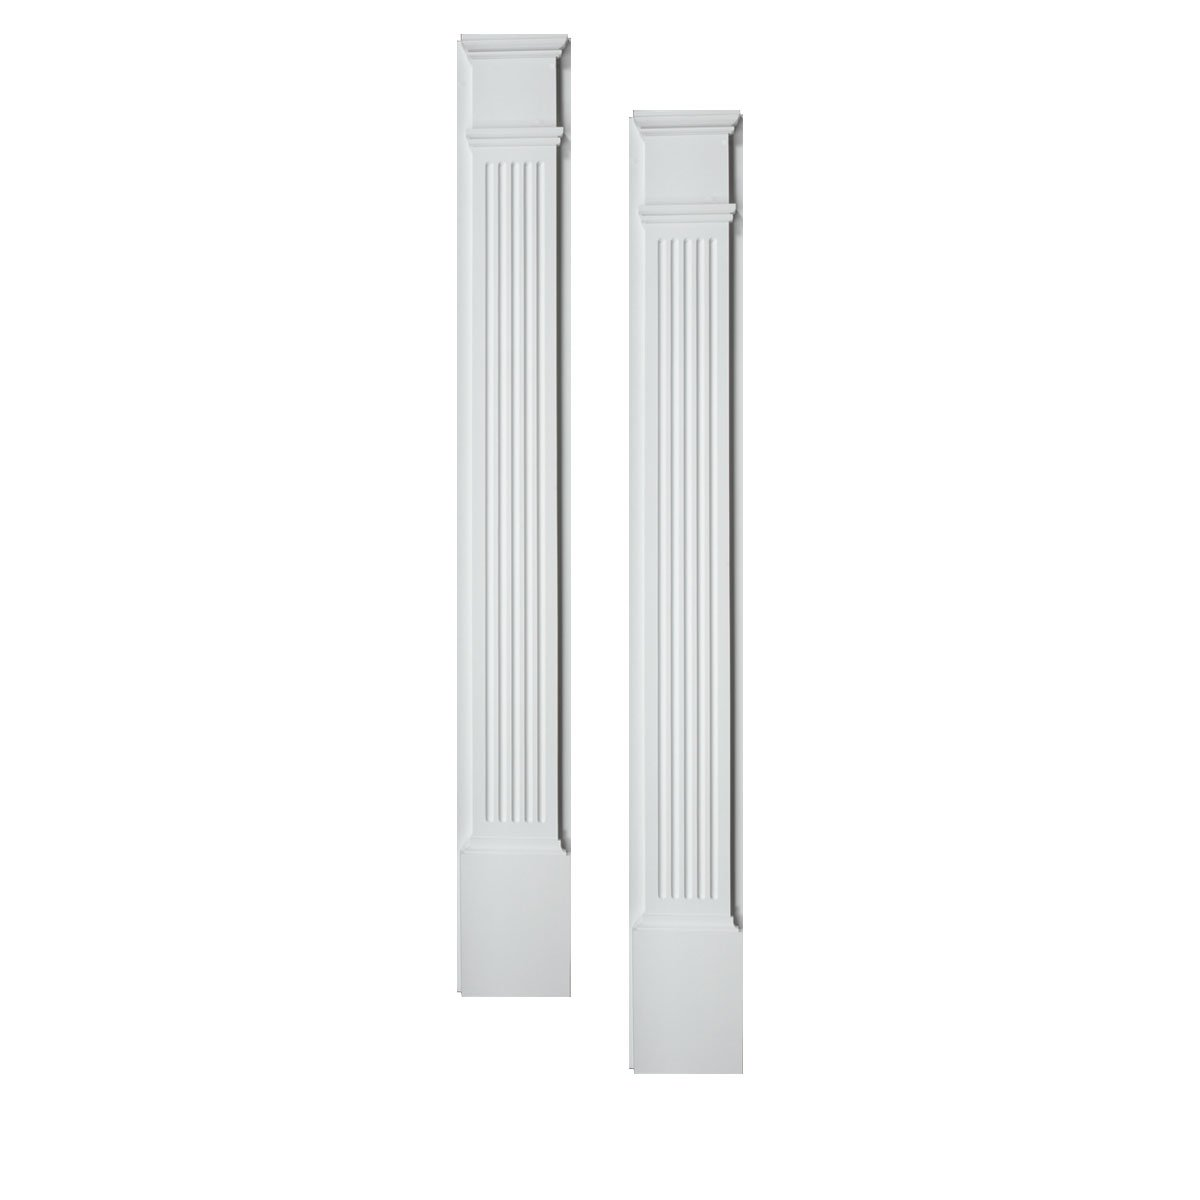 Fypon PIL4X86 4 1/2''W x 86''H x 1 5/8''P Fluted Pilaster, Moulded with Plinth Block (Set of 2), 1 Piece by Fypon